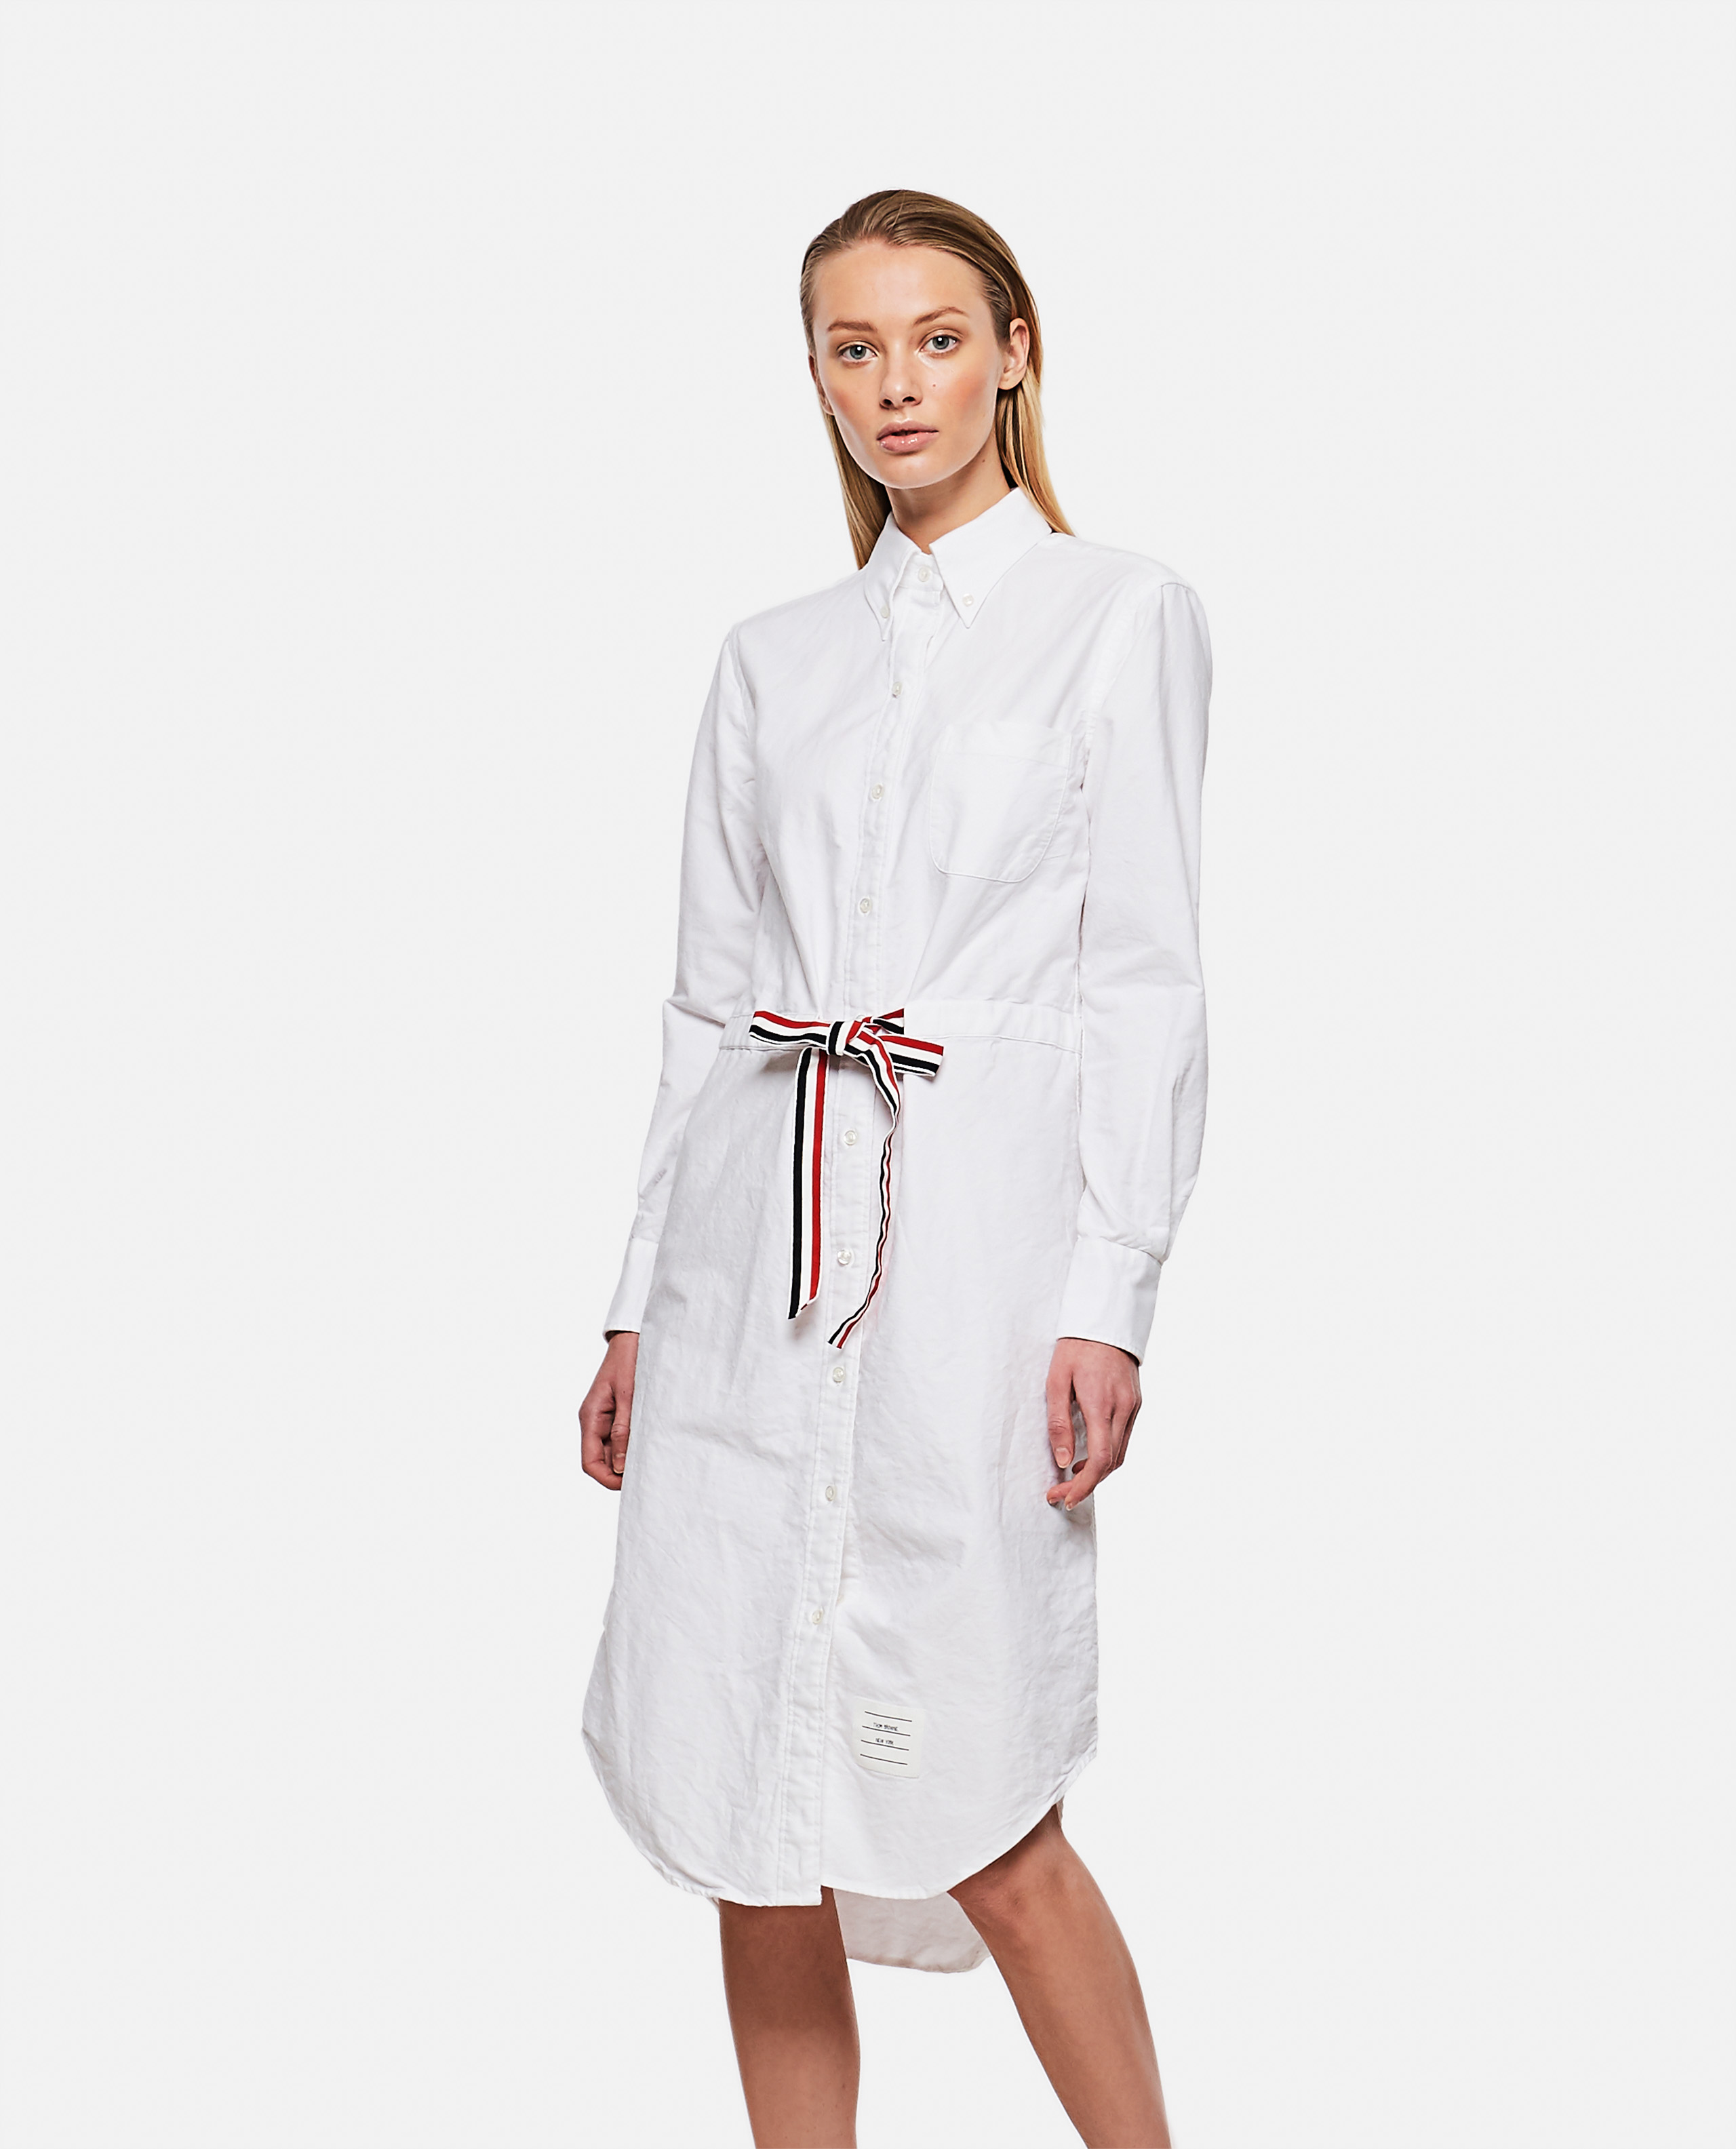 Thom Browne THOM BROWNE CHEMISIER DRESS WITH BELT